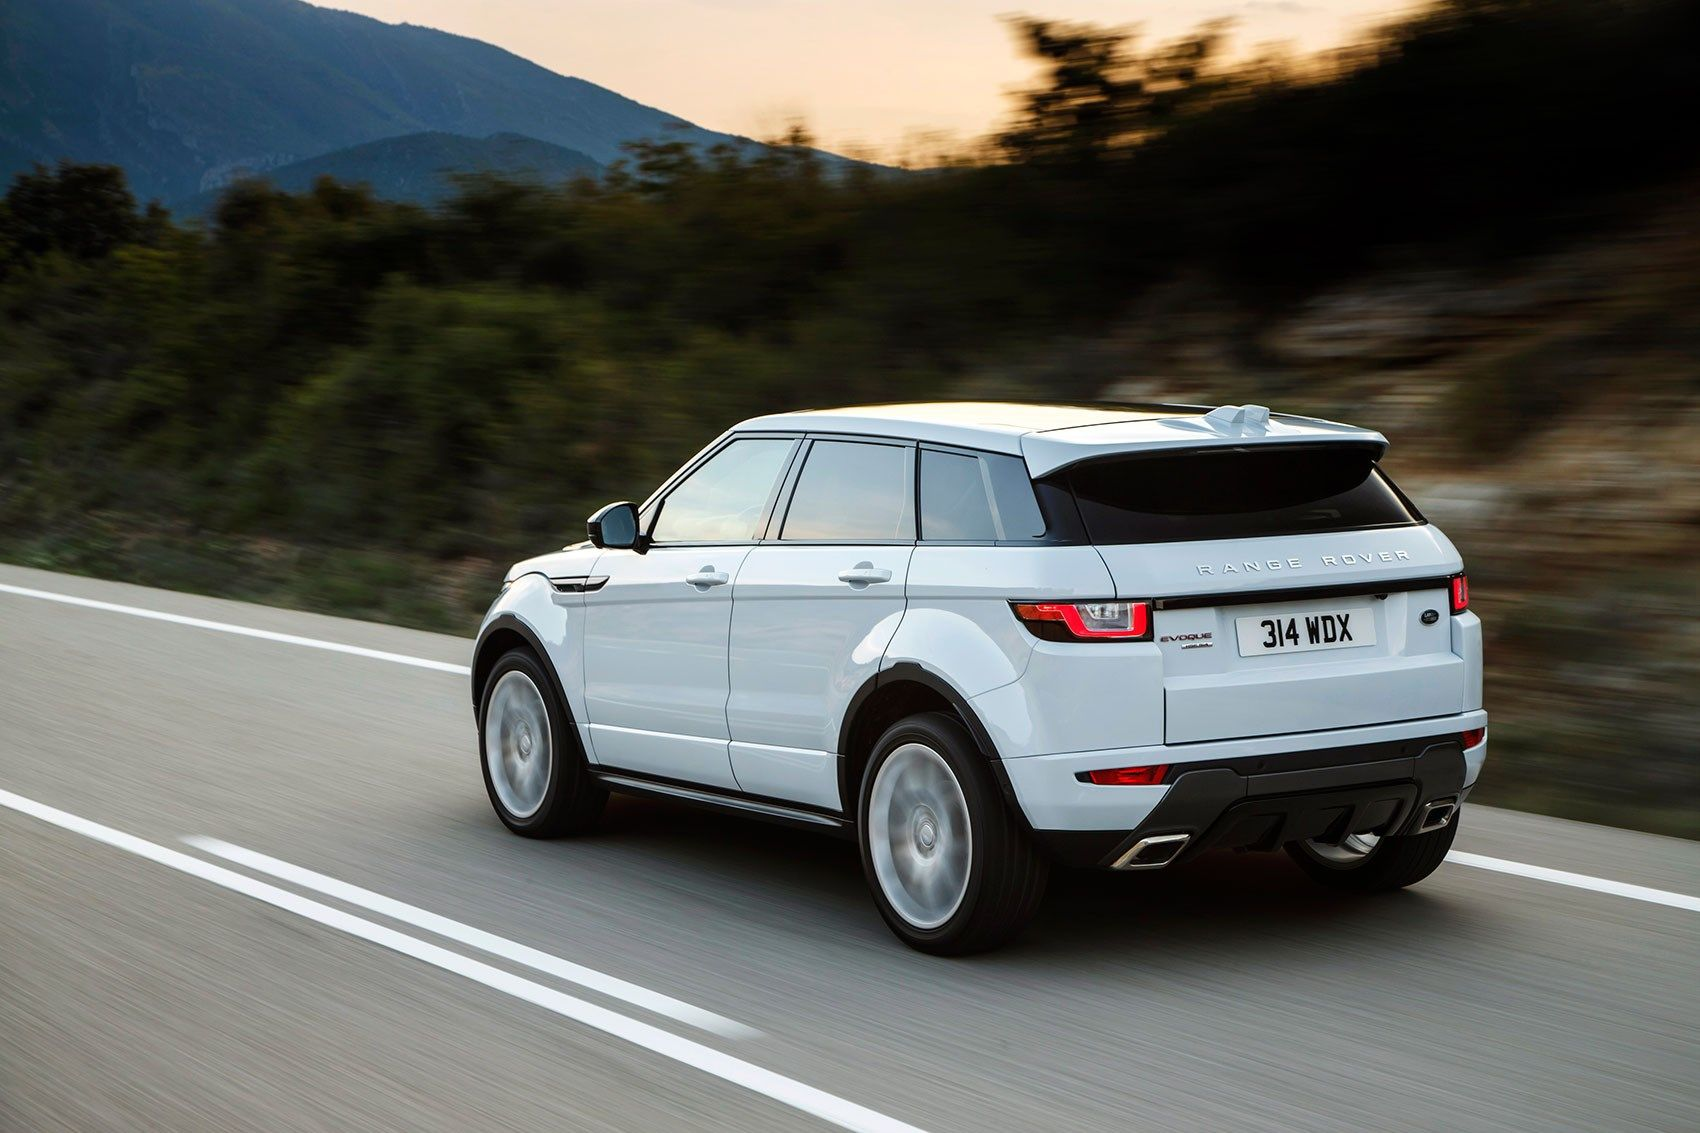 Benefits of Ordering Parts for Your Land Rover From an Official Land Rover Dealership